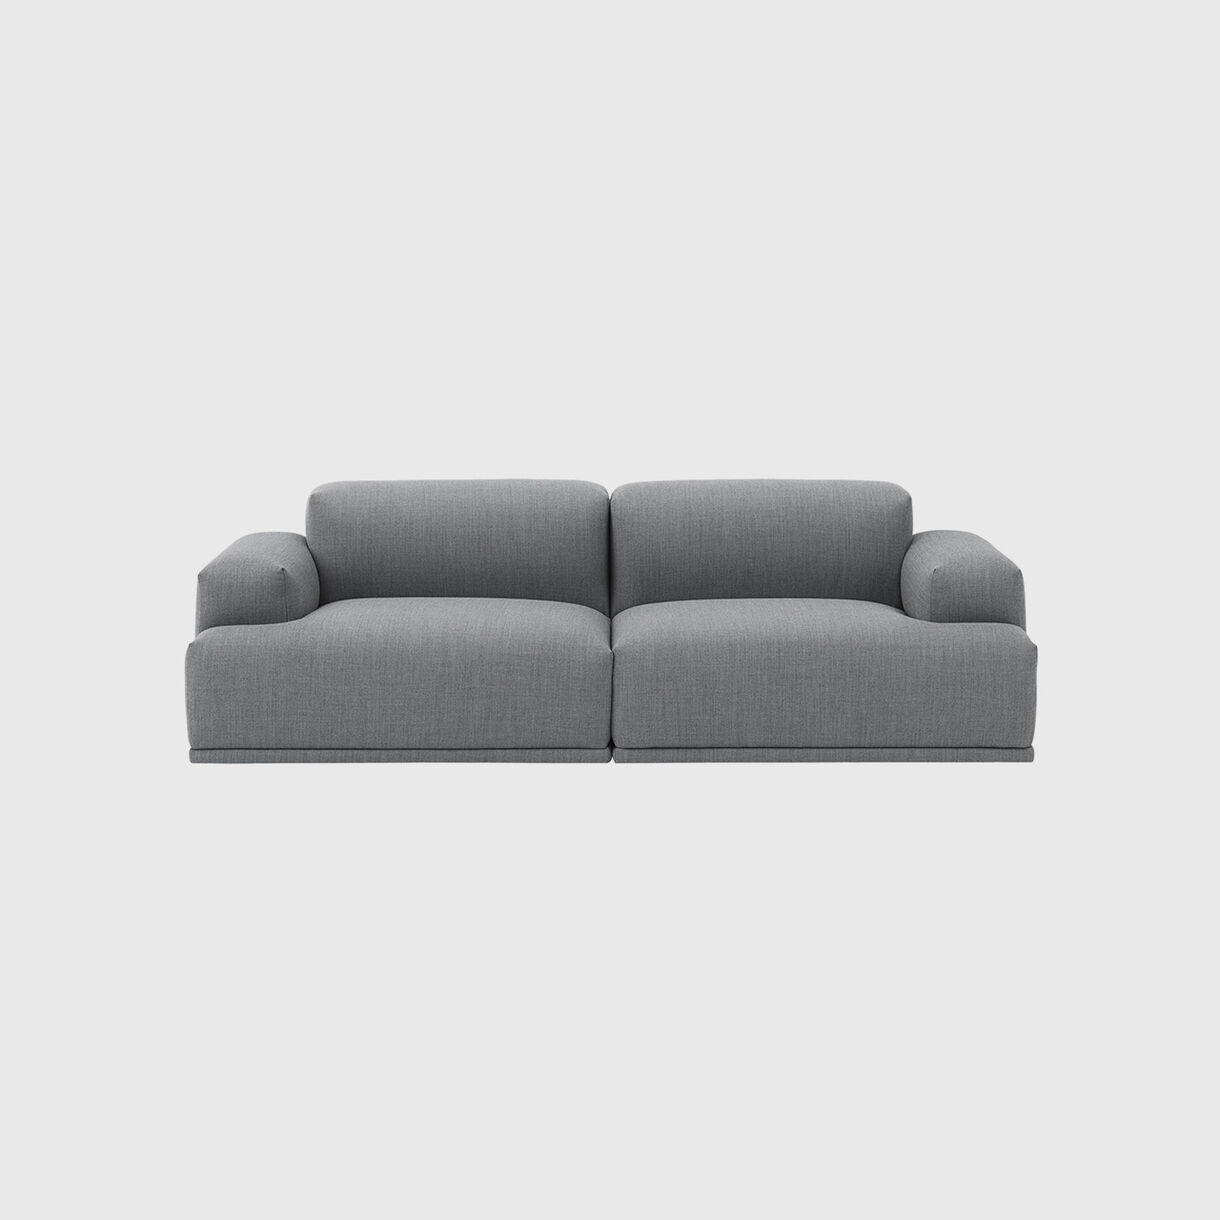 Connect Sofa, 2 Seater, Fiord 151